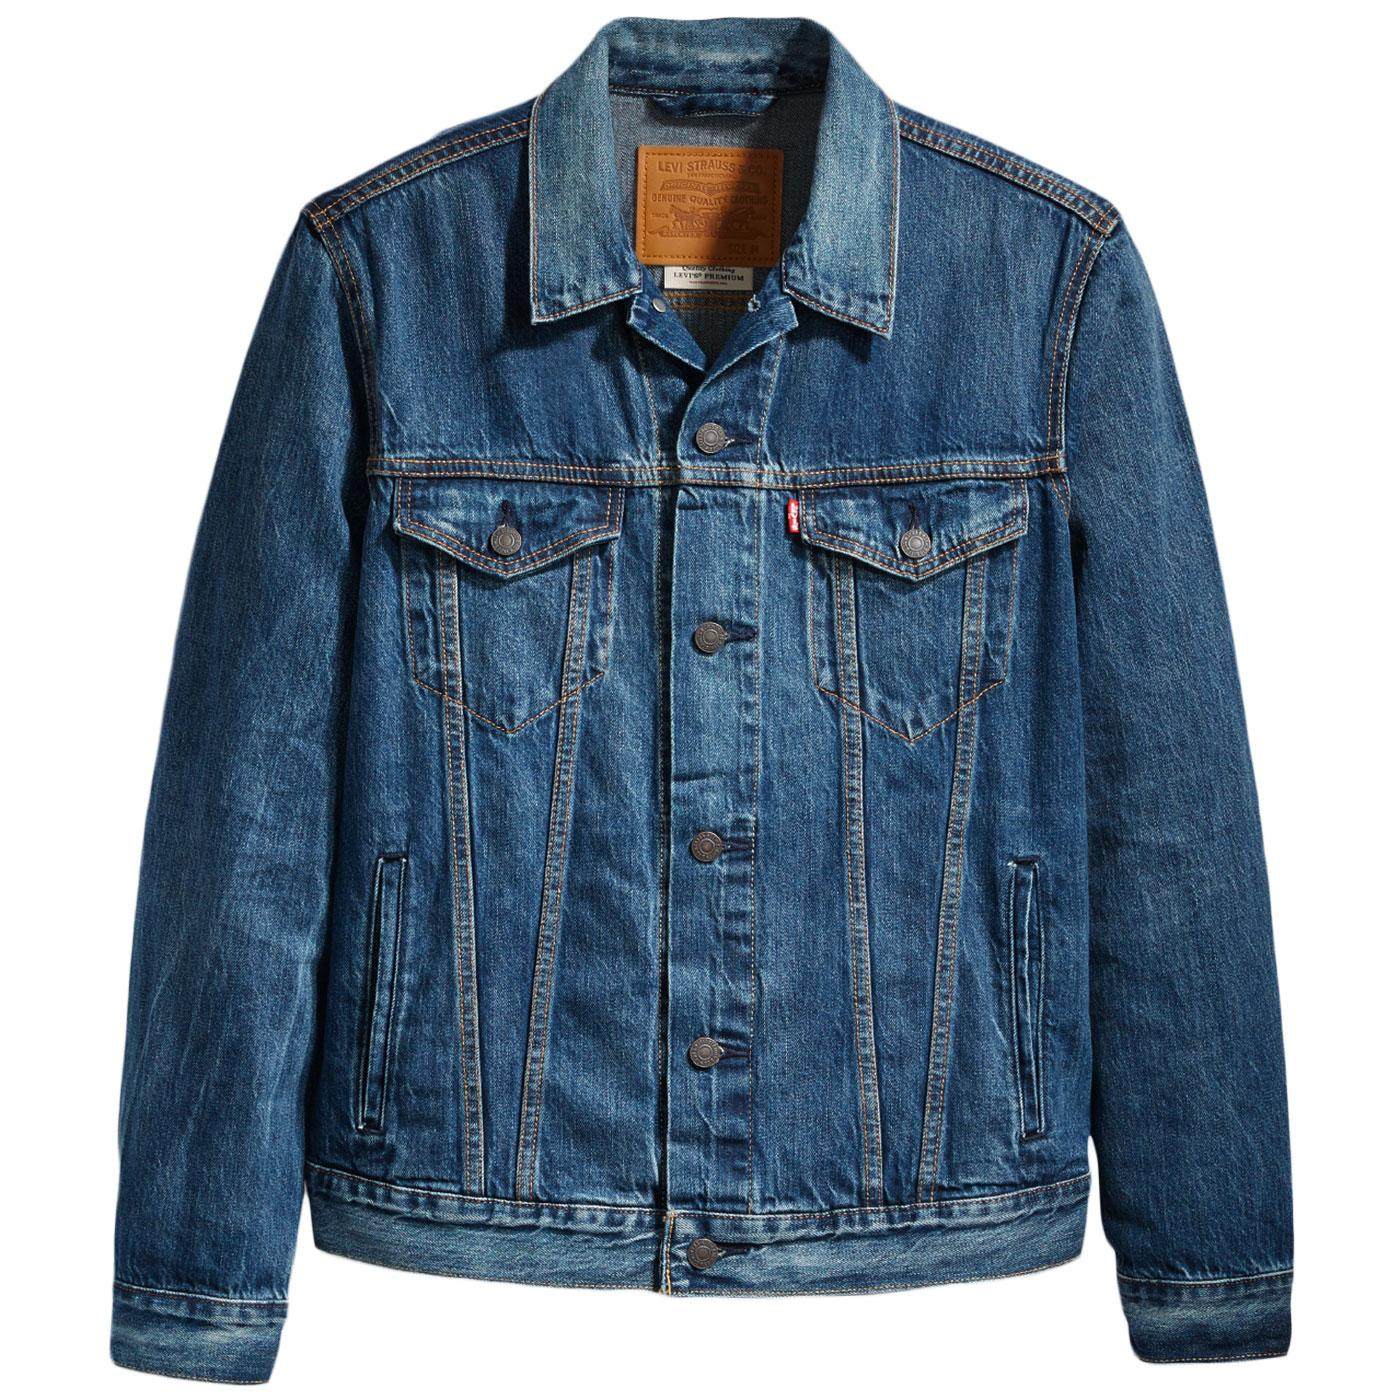 0e73c872 LEVI'S Men's Retro Mod Denim Trucker Jacket in Mayze Blue